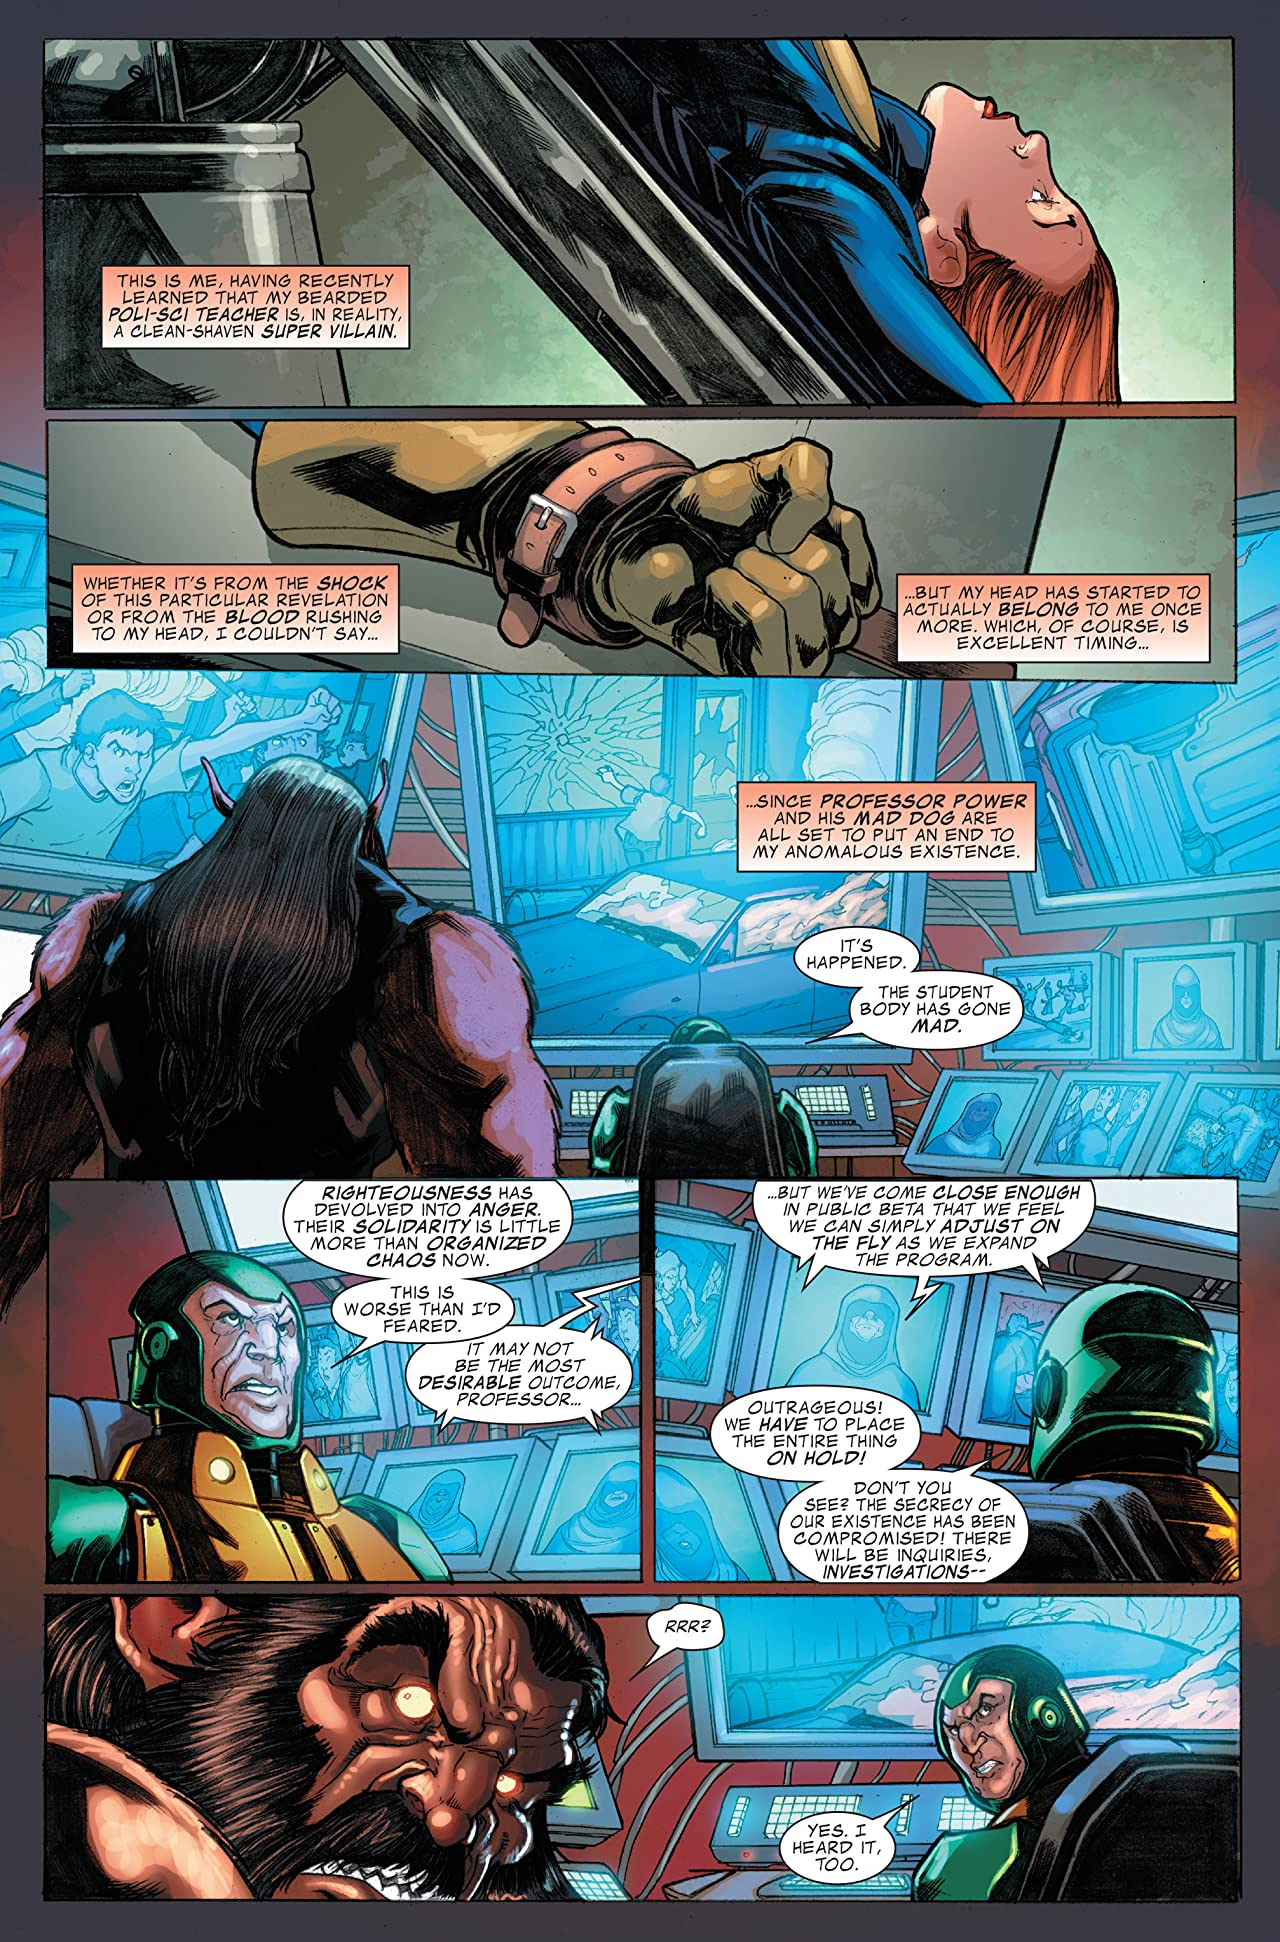 Nomad: Girl Without A World #4 (of 4)